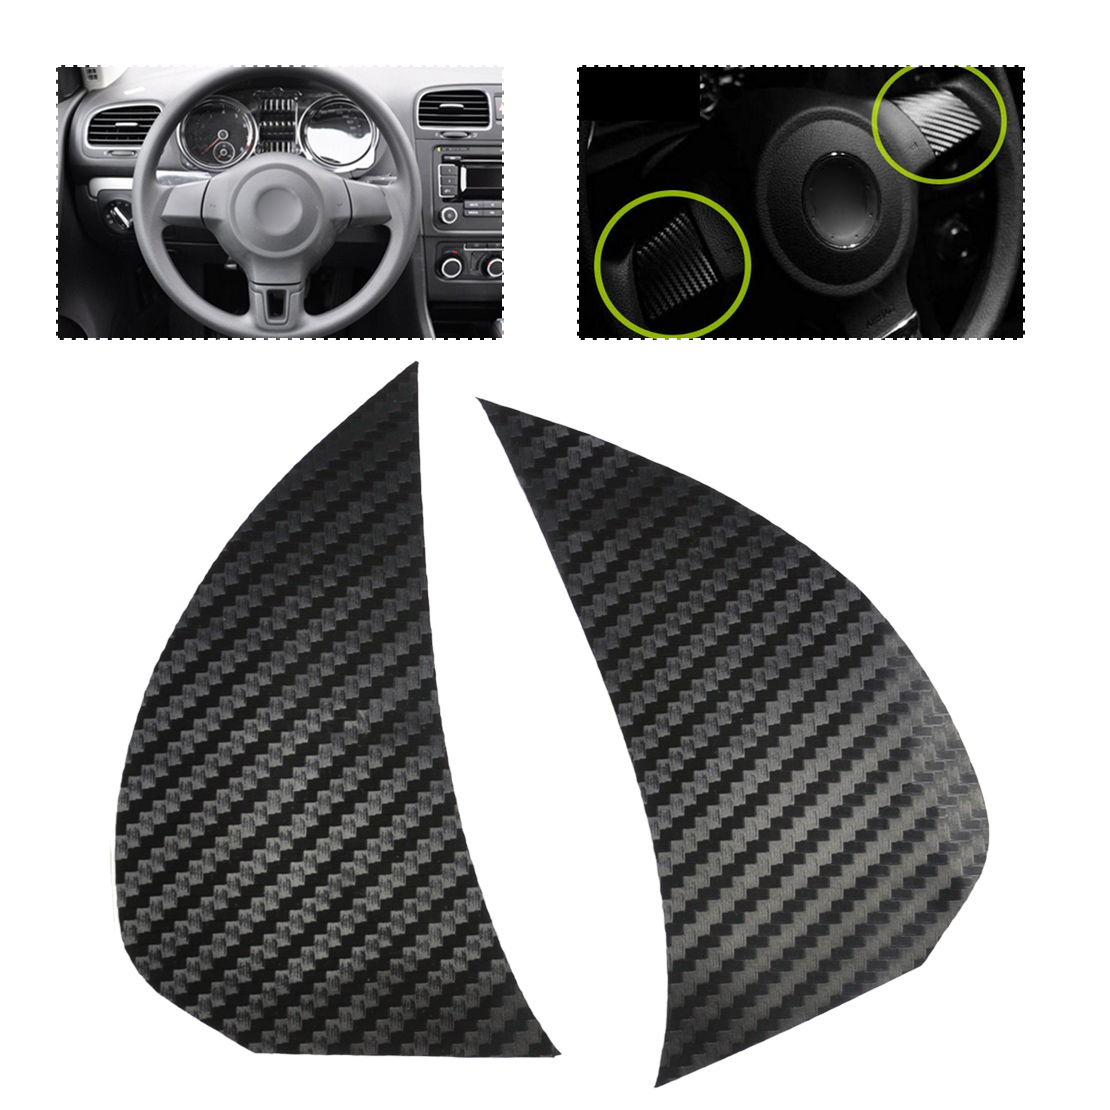 CITALL 2Pcs Car Real Carbon Fiber Black Steering Wheel Cover Trim fit for VW Volkswagen Golf6 Polo Bora 2011